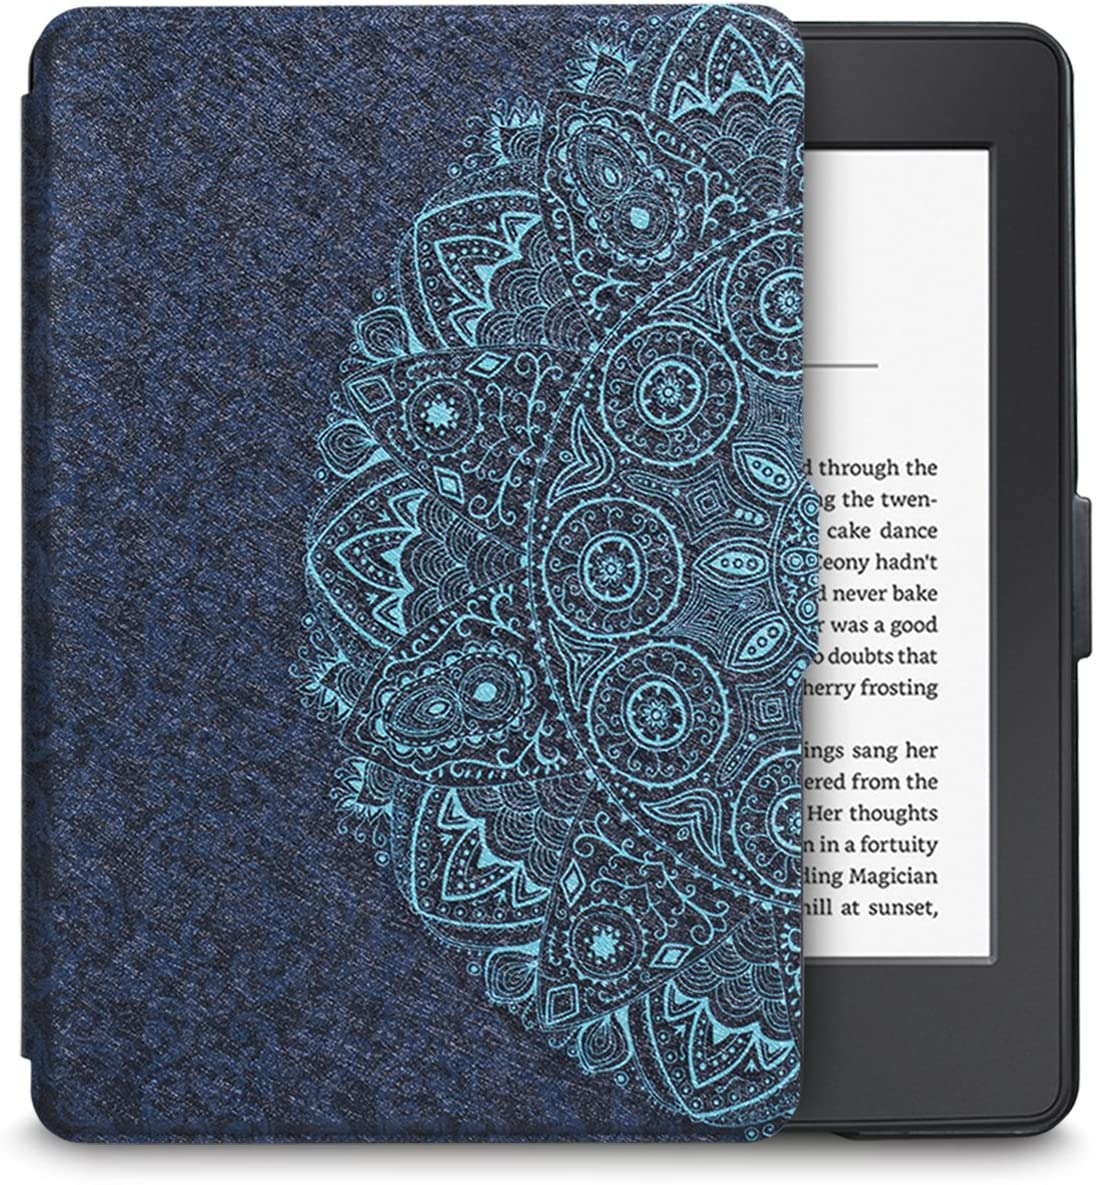 Kindle Cases For Basic, Paperwhite, And Oasis Owners